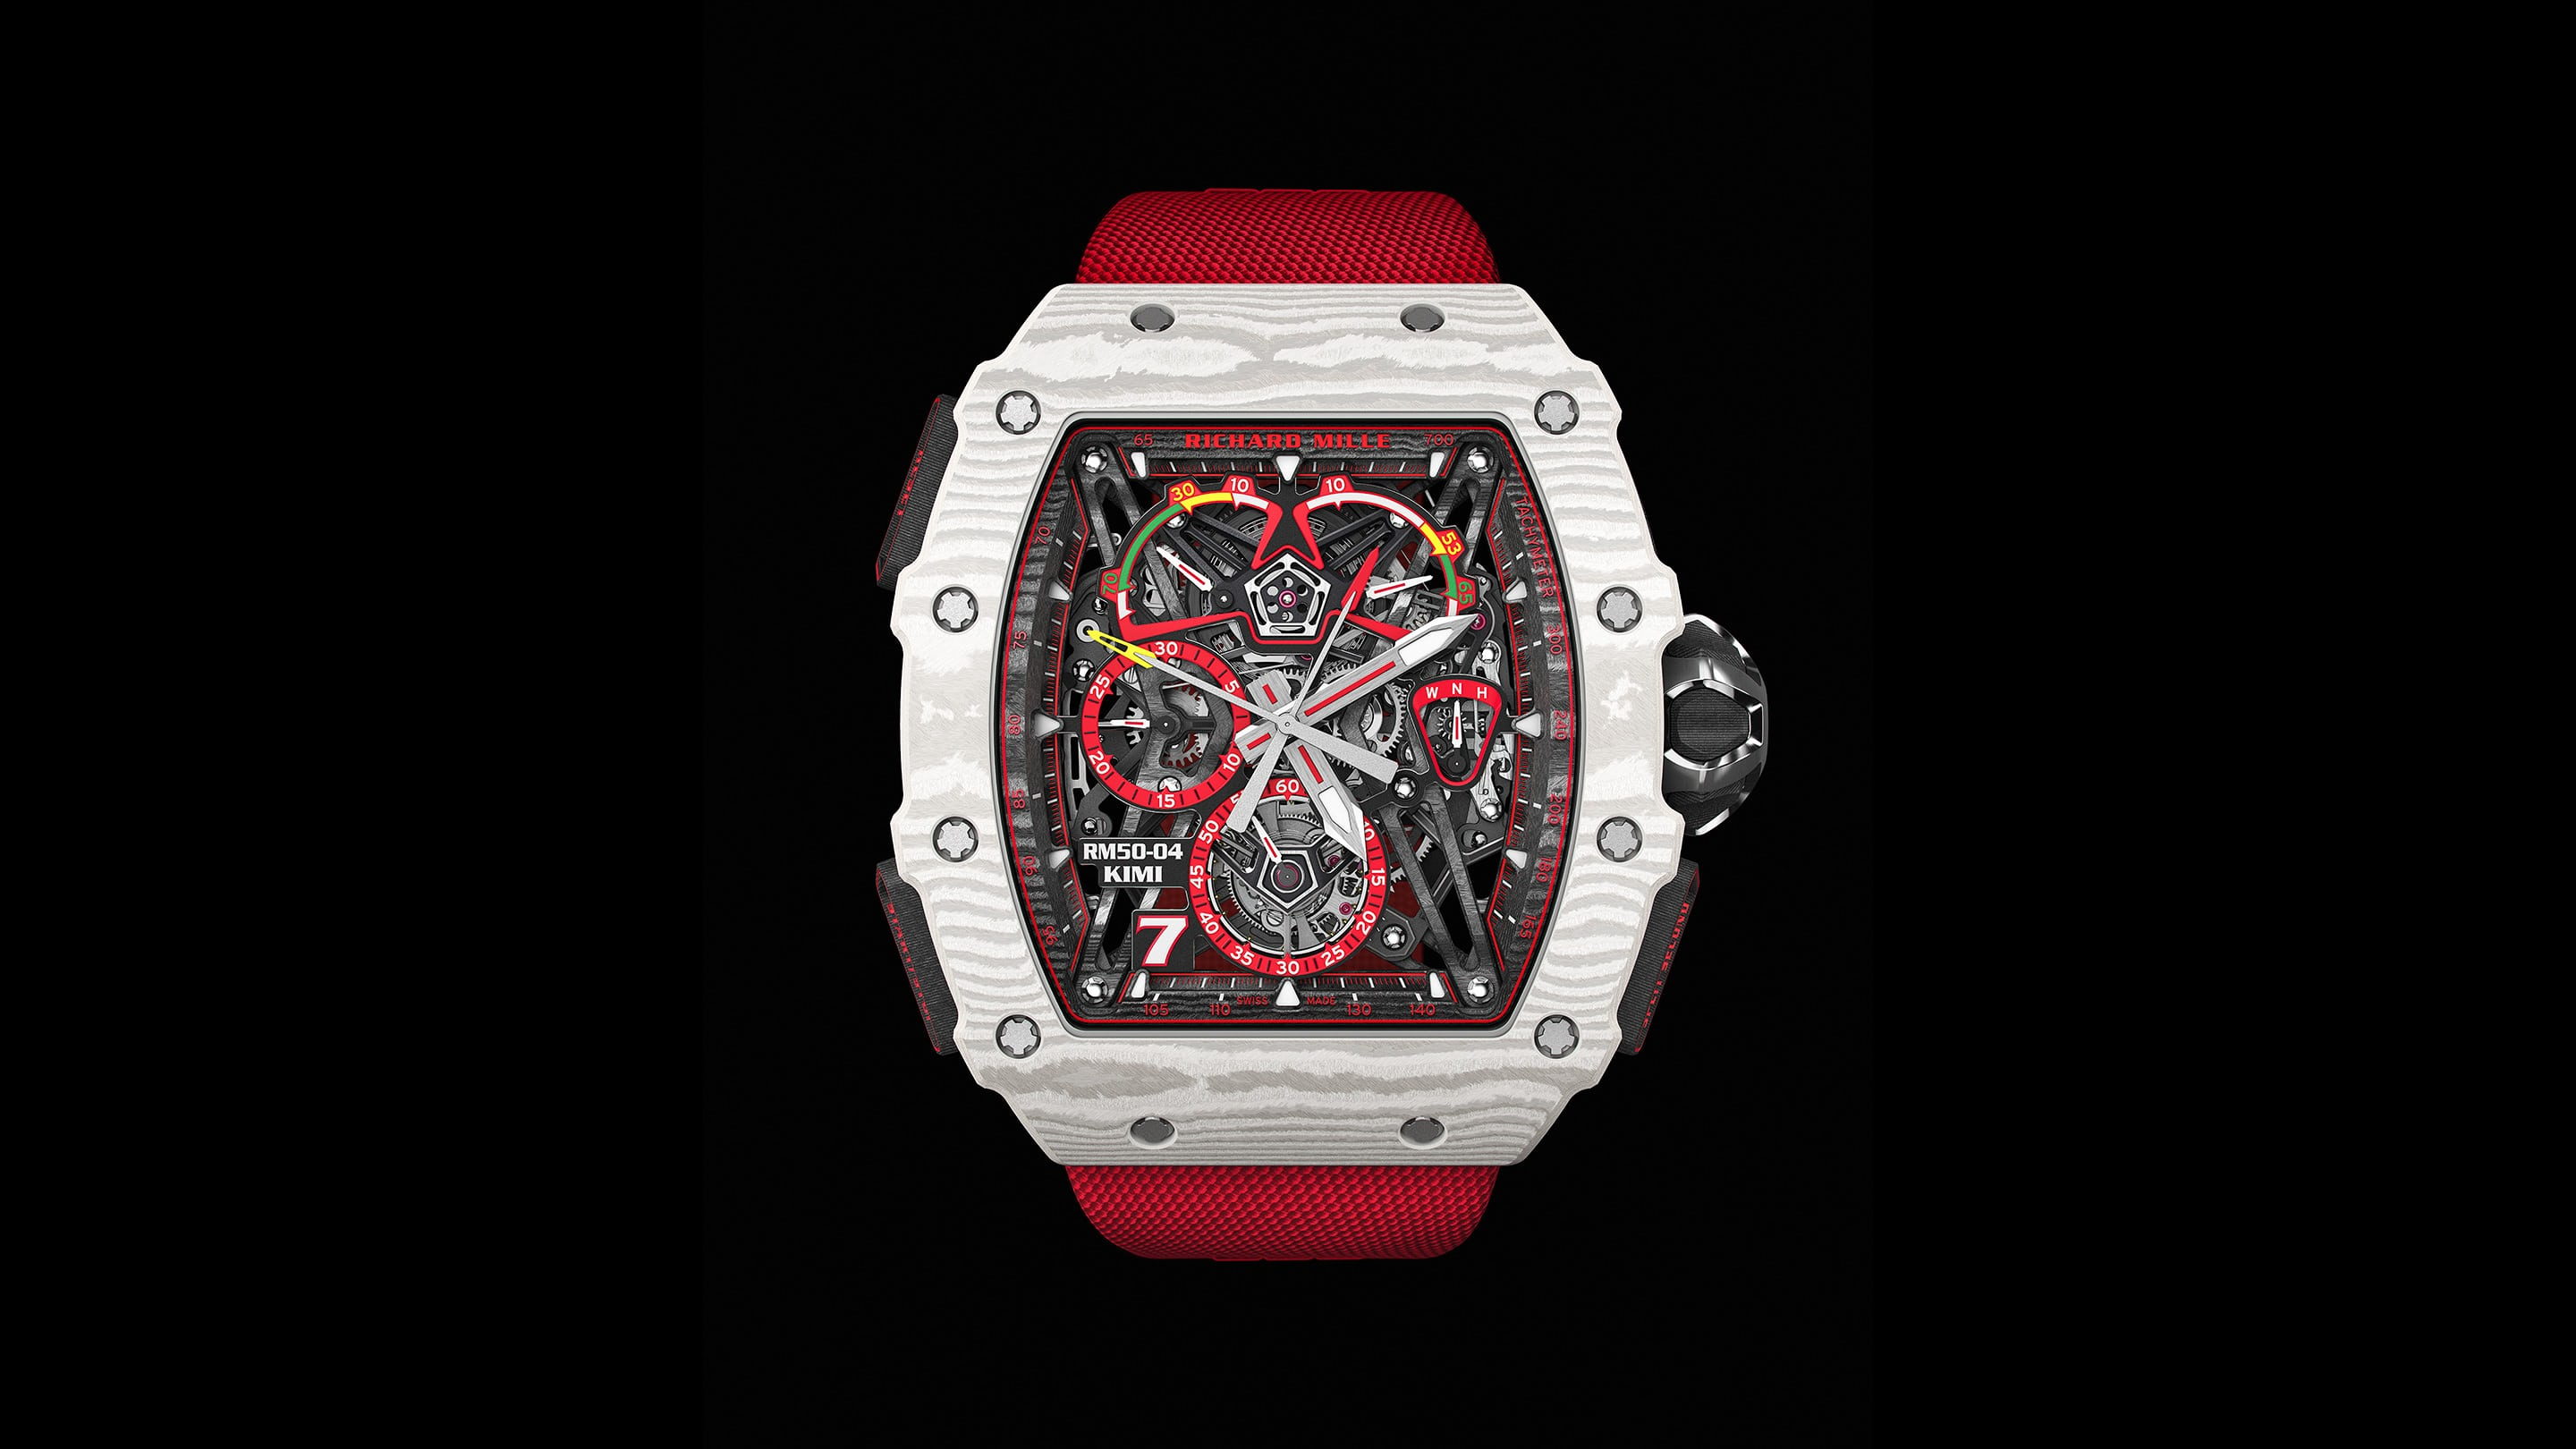 Richard-Mille-RM-50-04-Tourbillon-Split-Seconds-Chronograph-Kimi-Raikkonen-Limited-Edition-2